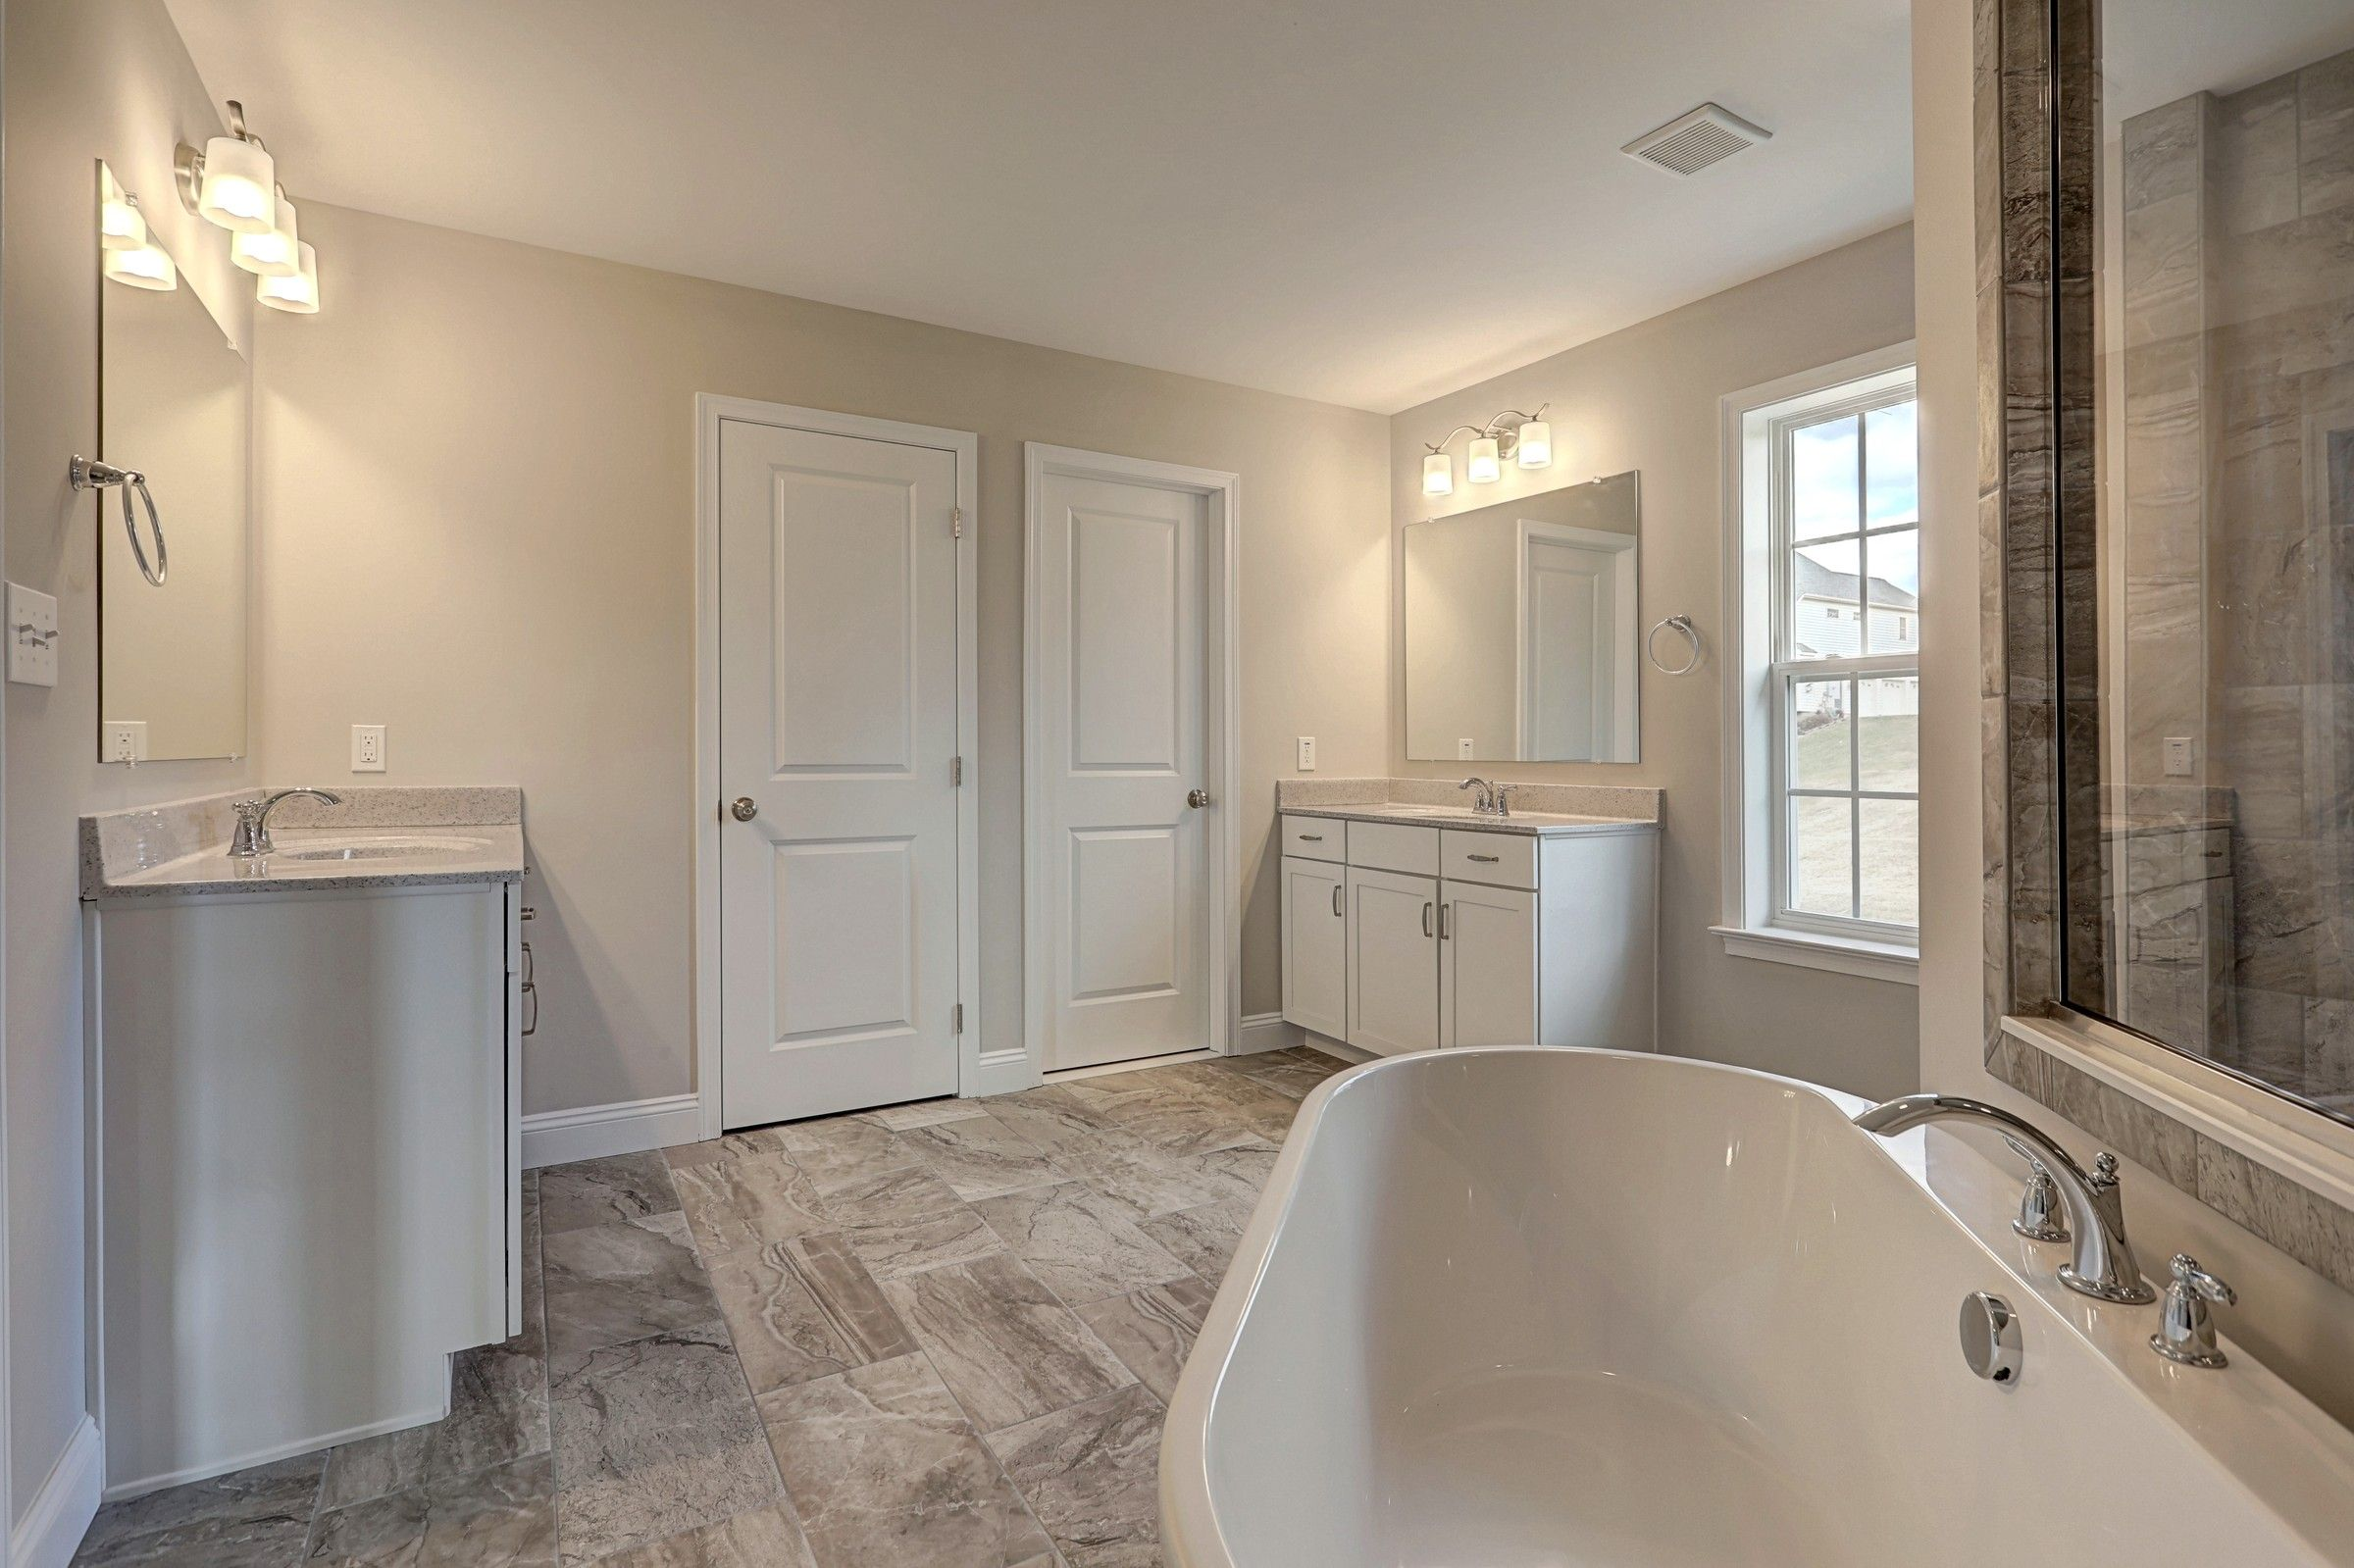 Bathroom featured in the Parker Vintage By Keystone Custom Homes in York, PA